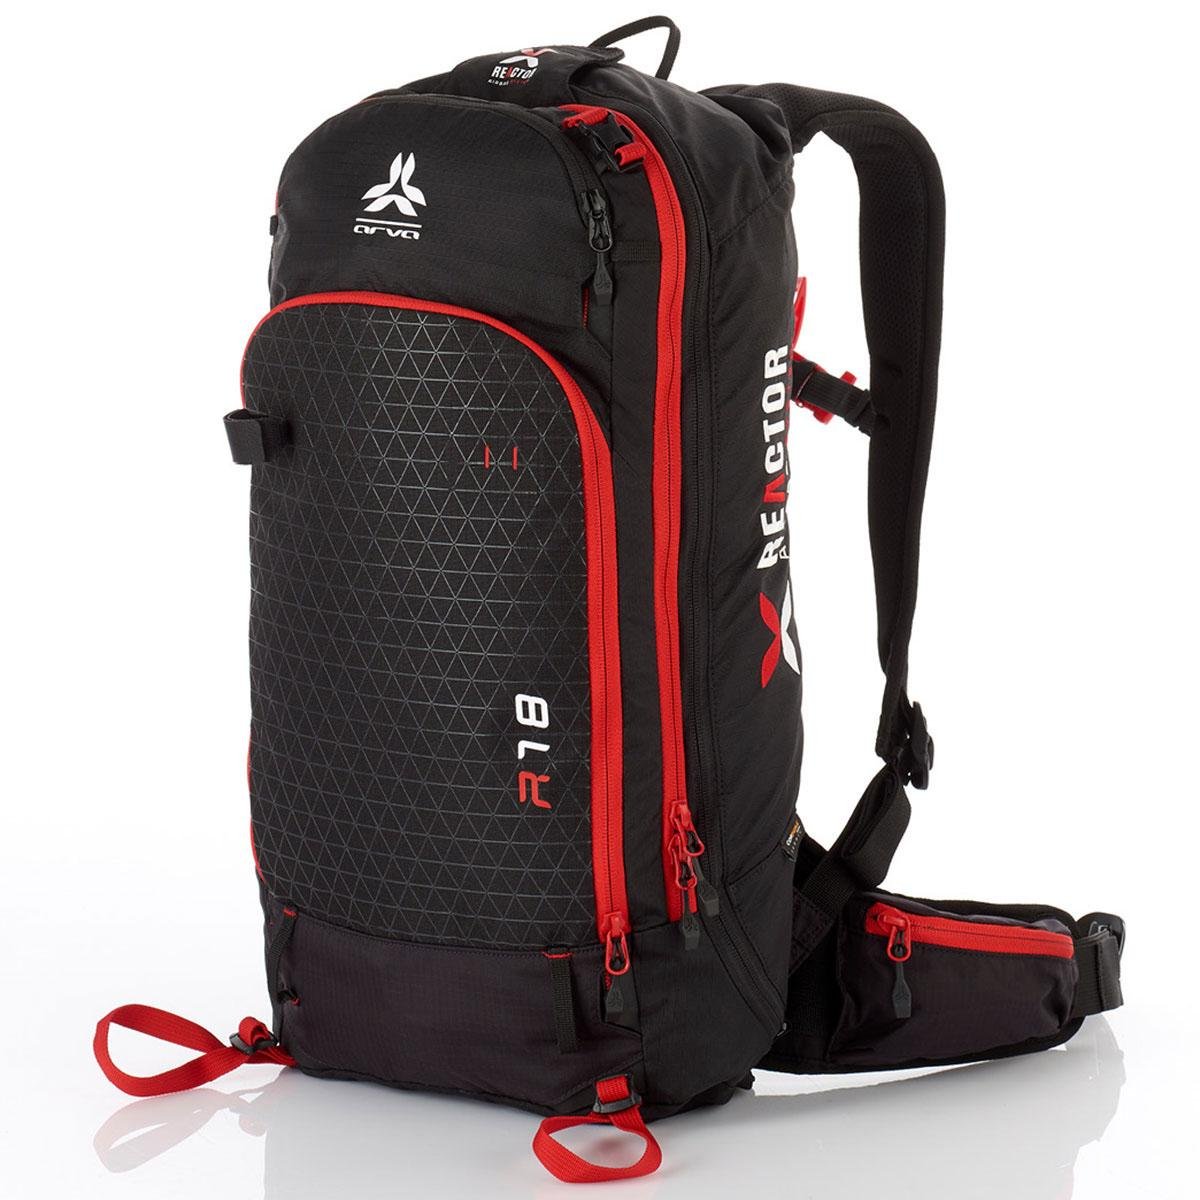 Arva Reactor 18 Airbag Backpack in Black and Red